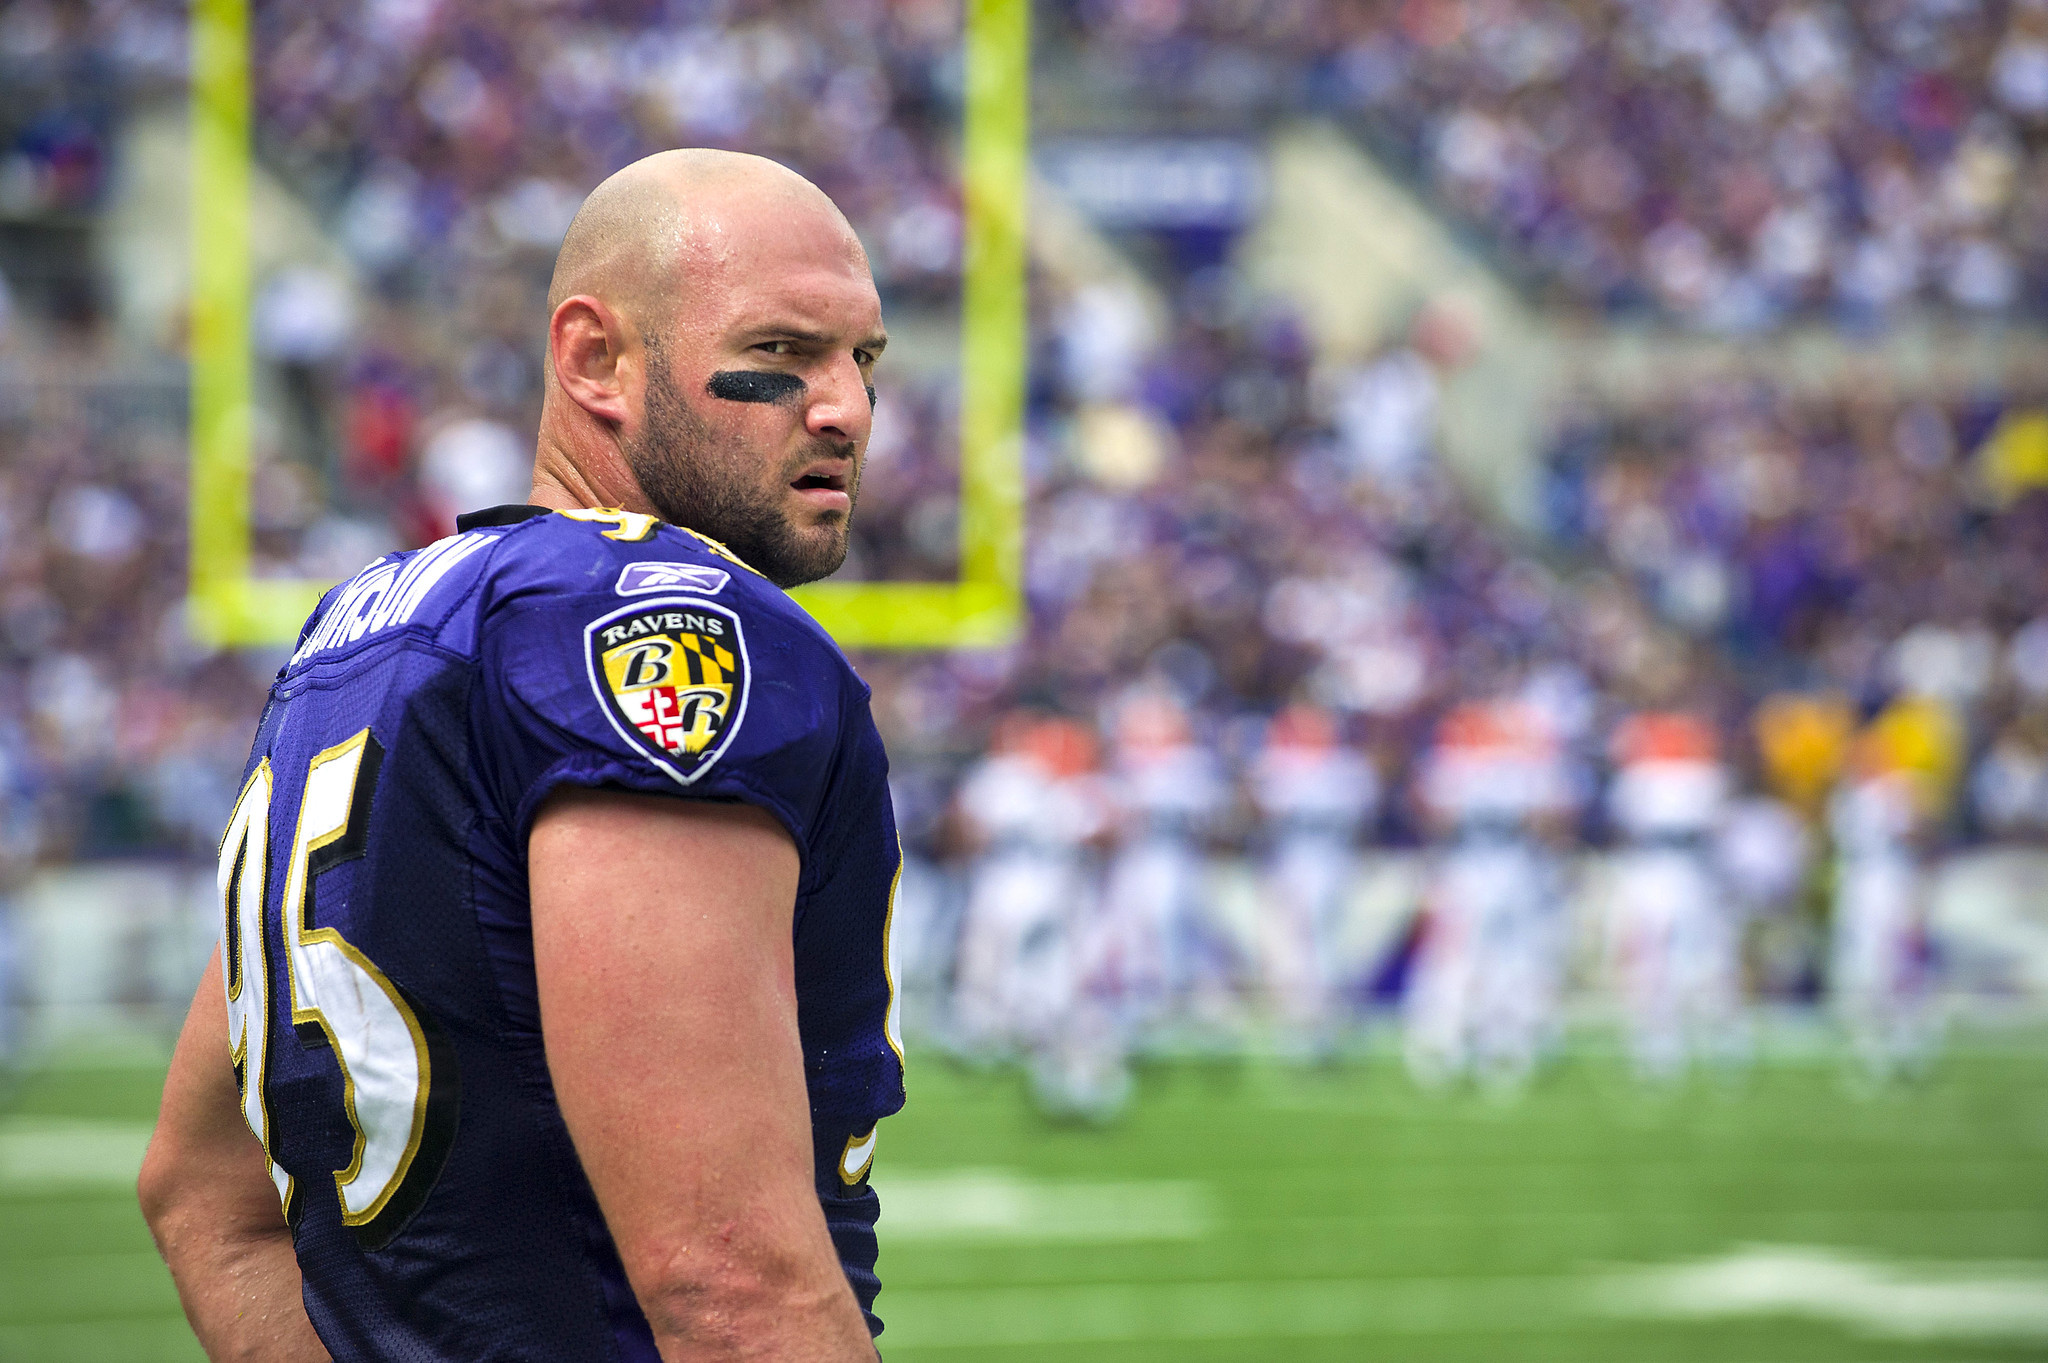 Jarret Johnson to sign one-day c